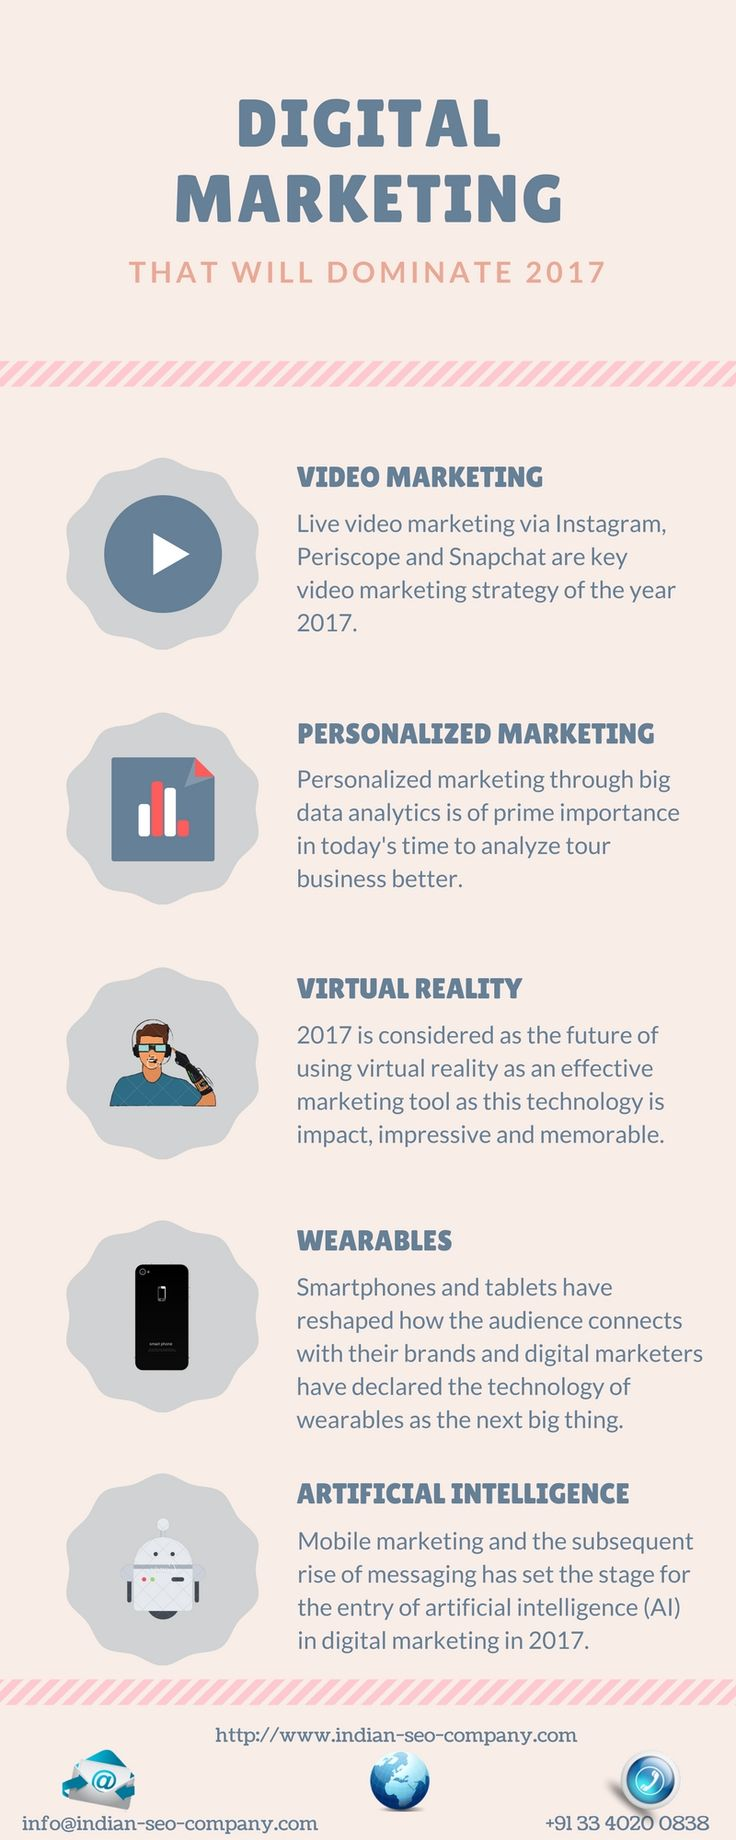 Trends in every field changes with time. And digital marketing is no exception. Know more at http://www.indian-seo-company.com